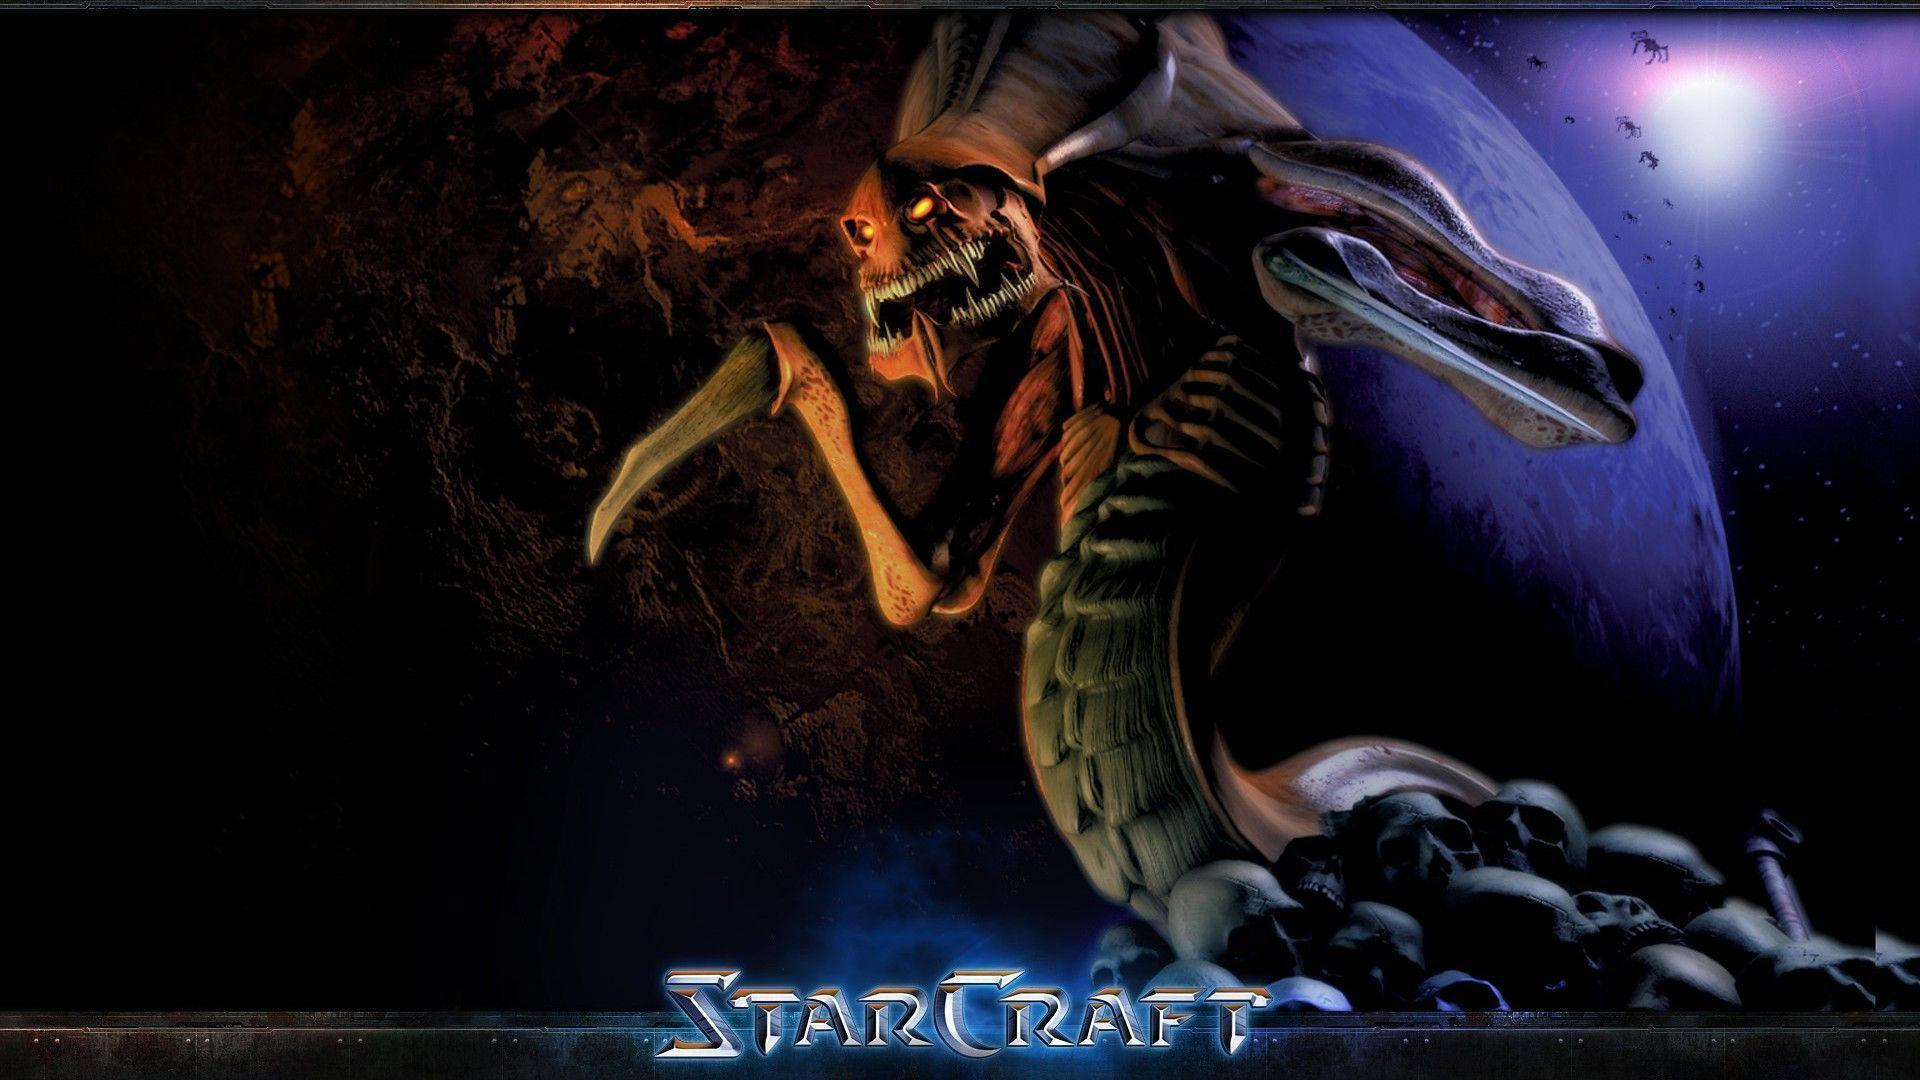 zerg starcraft wallpaper 2560x1440 - photo #23